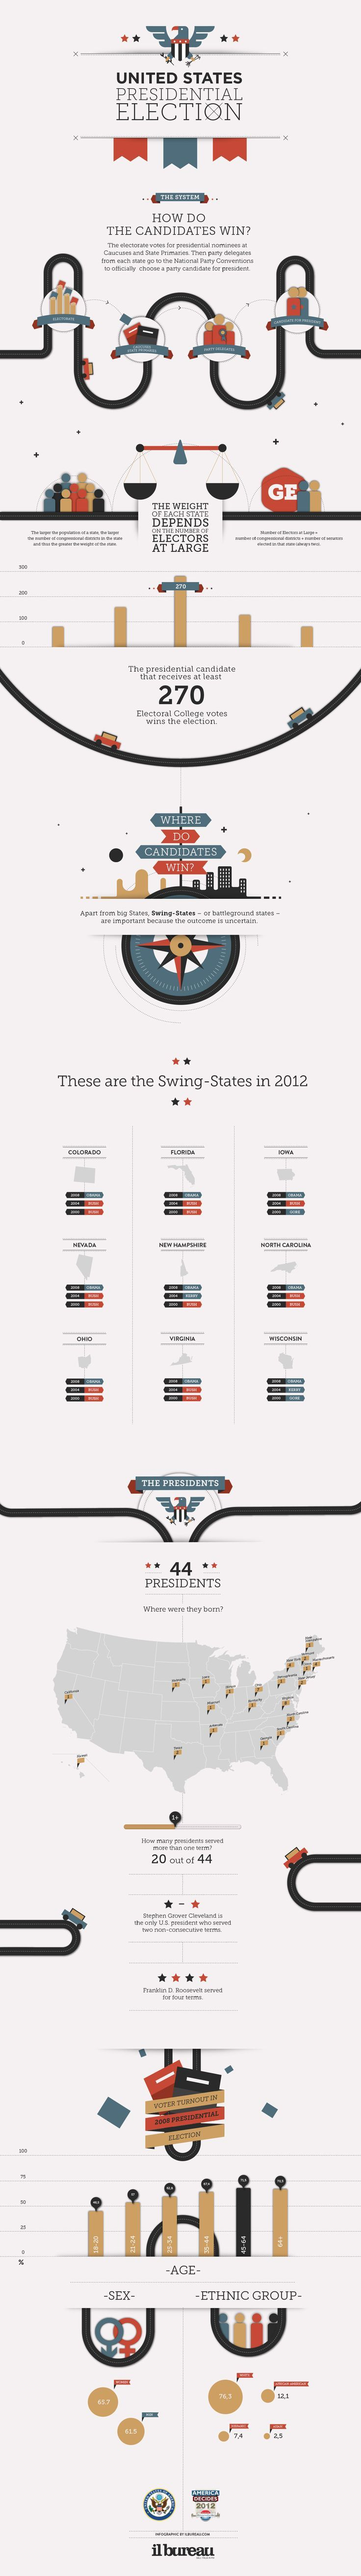 il Bureau - Presidential Election - infographic #infographics